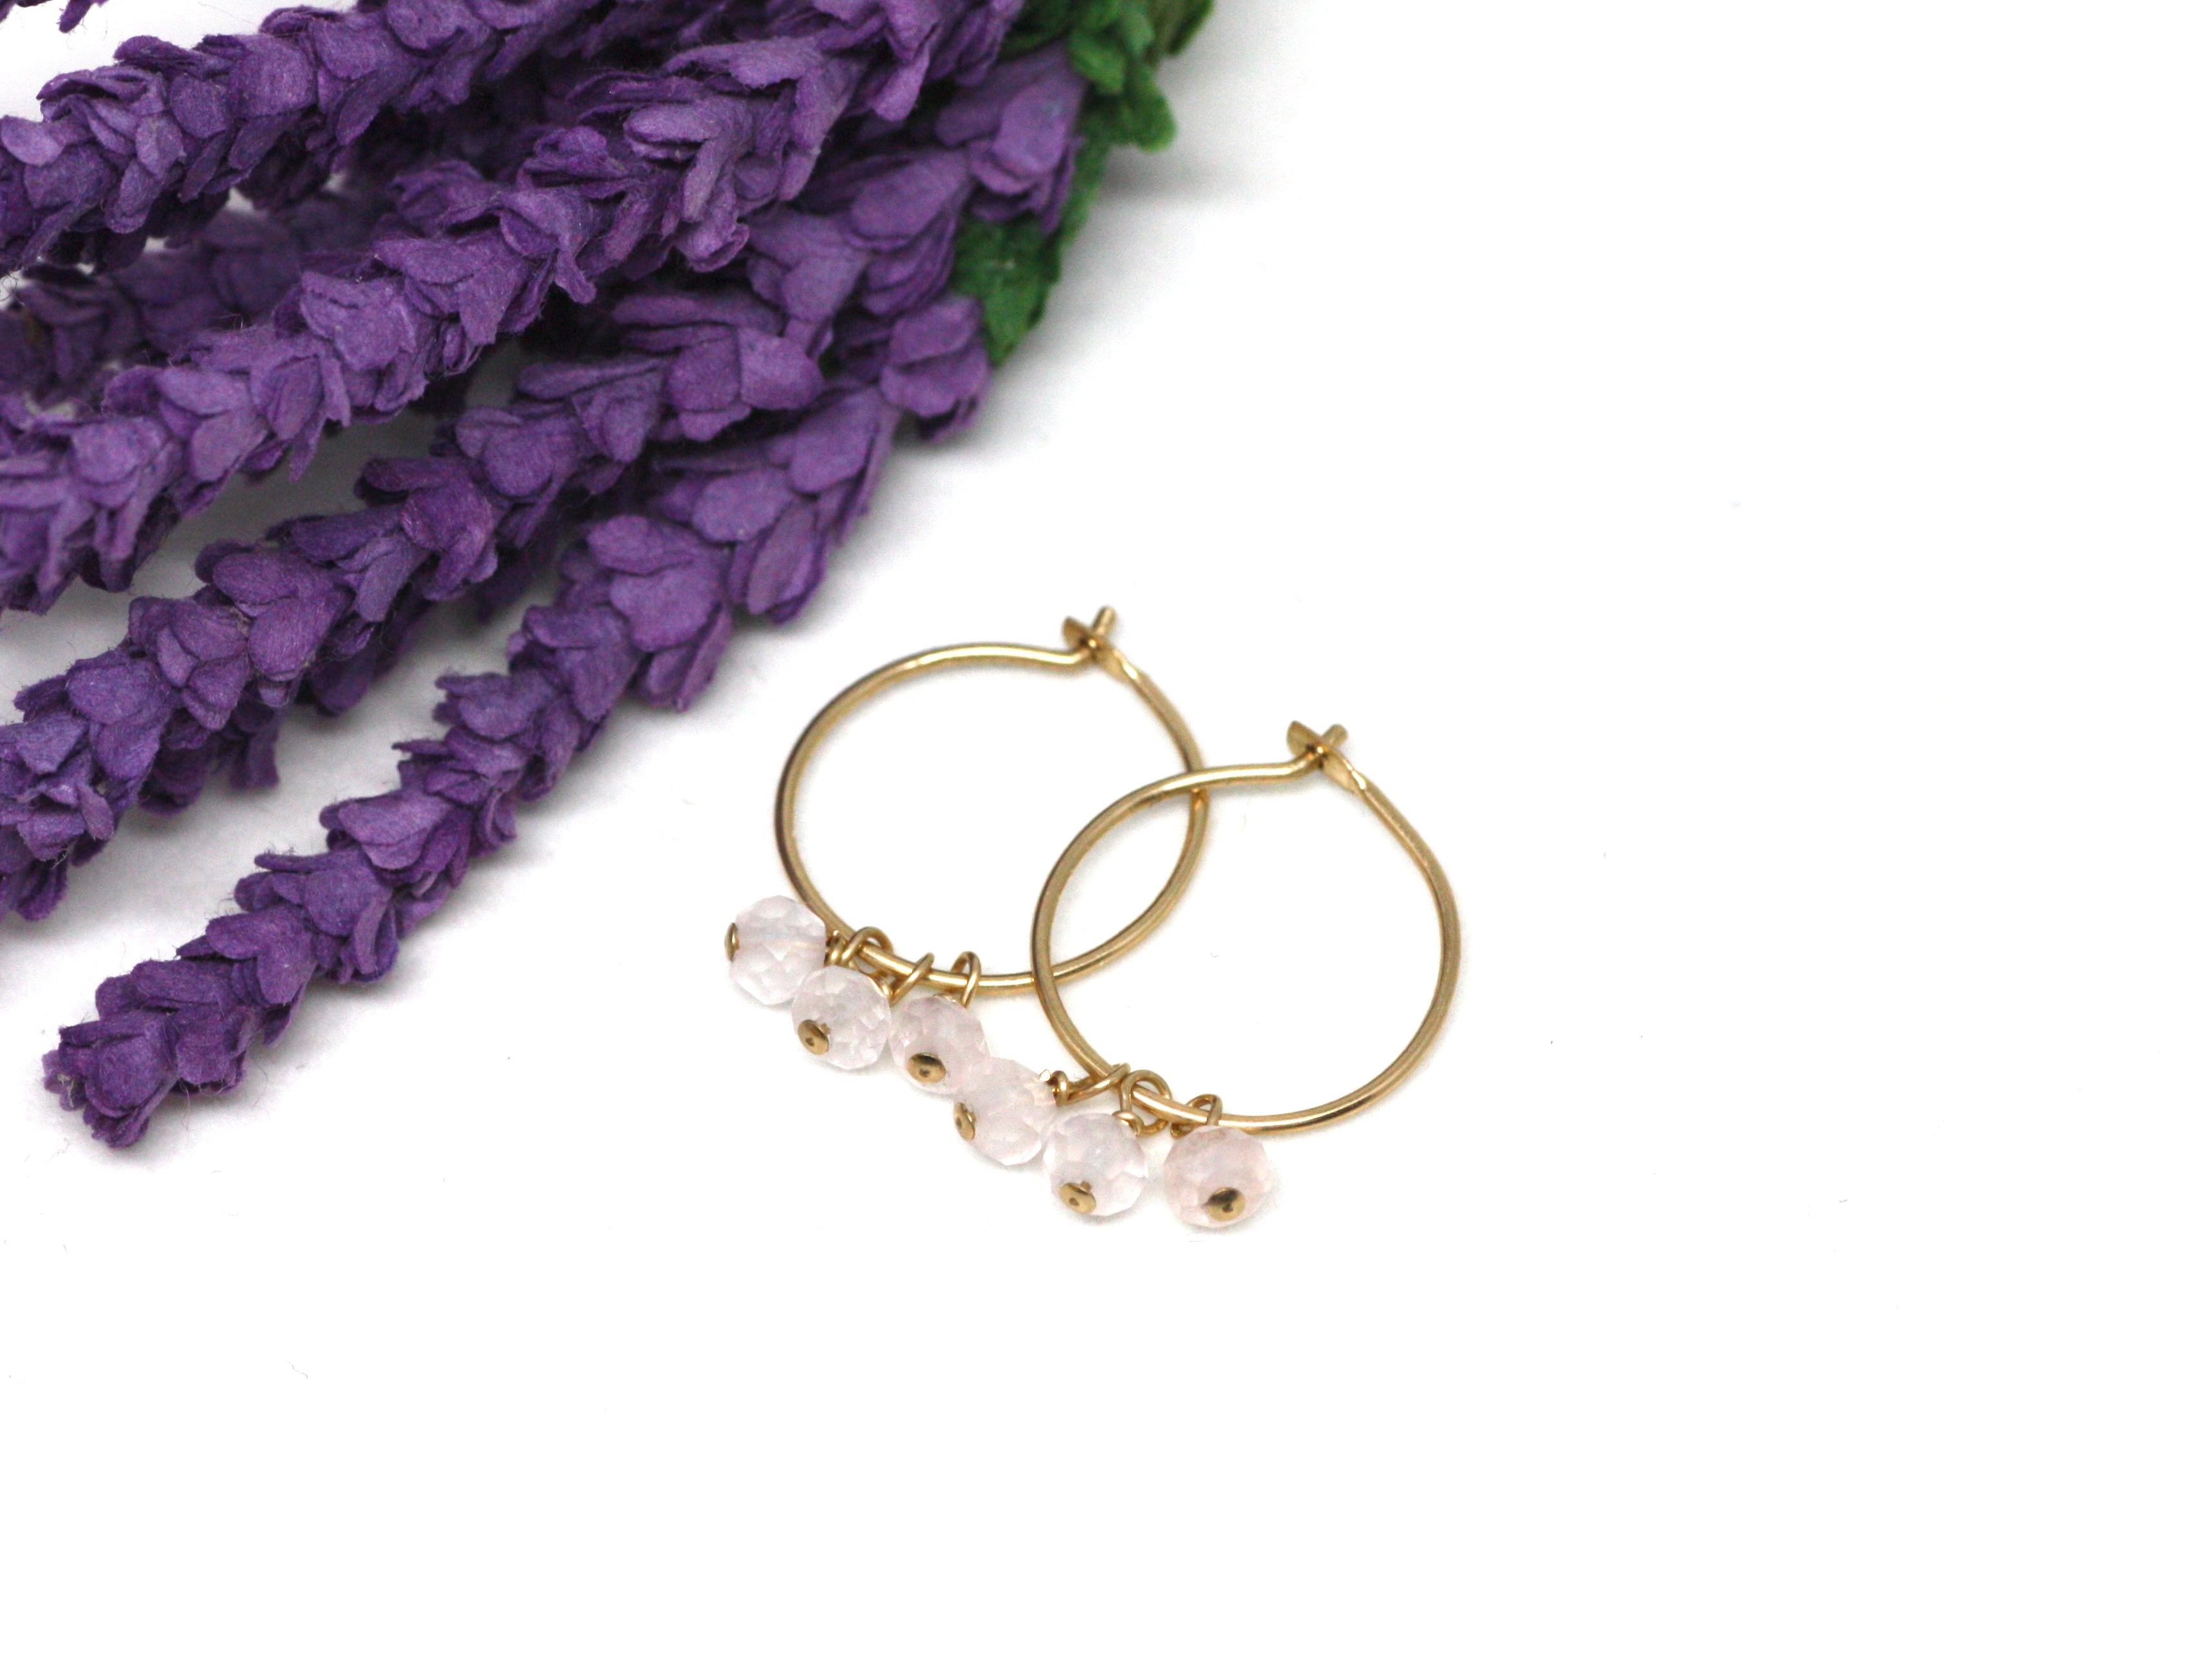 Rose Quartz Small Hoop Earrings in Gold